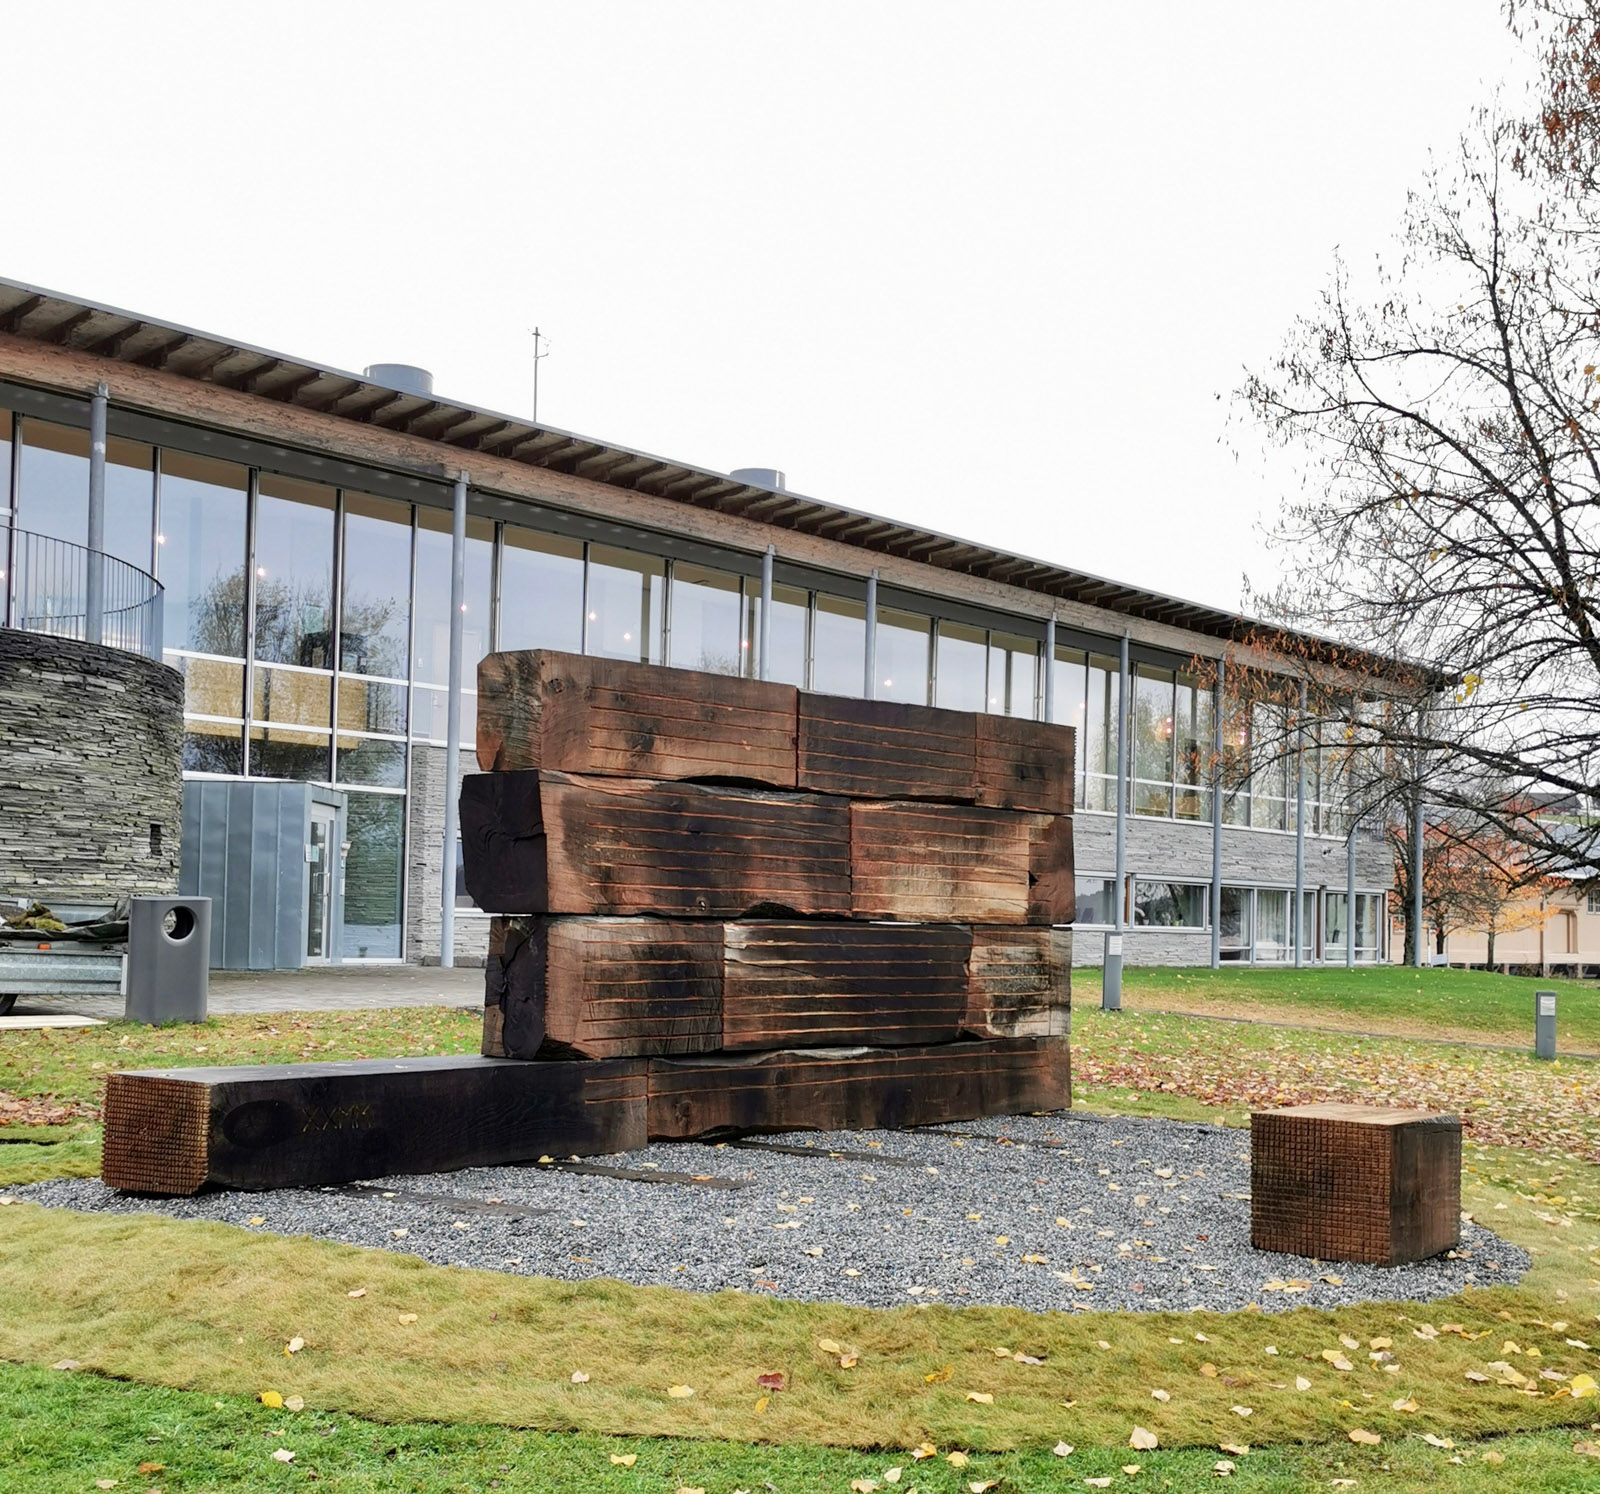 Domstol / Court, 2020. Untreated oak blocks carved with chainsaw and wood cutter, railway sleepers. 650 x 270 x 70 cm. Commissioned work, KORO (Public Art Norway), 2020.